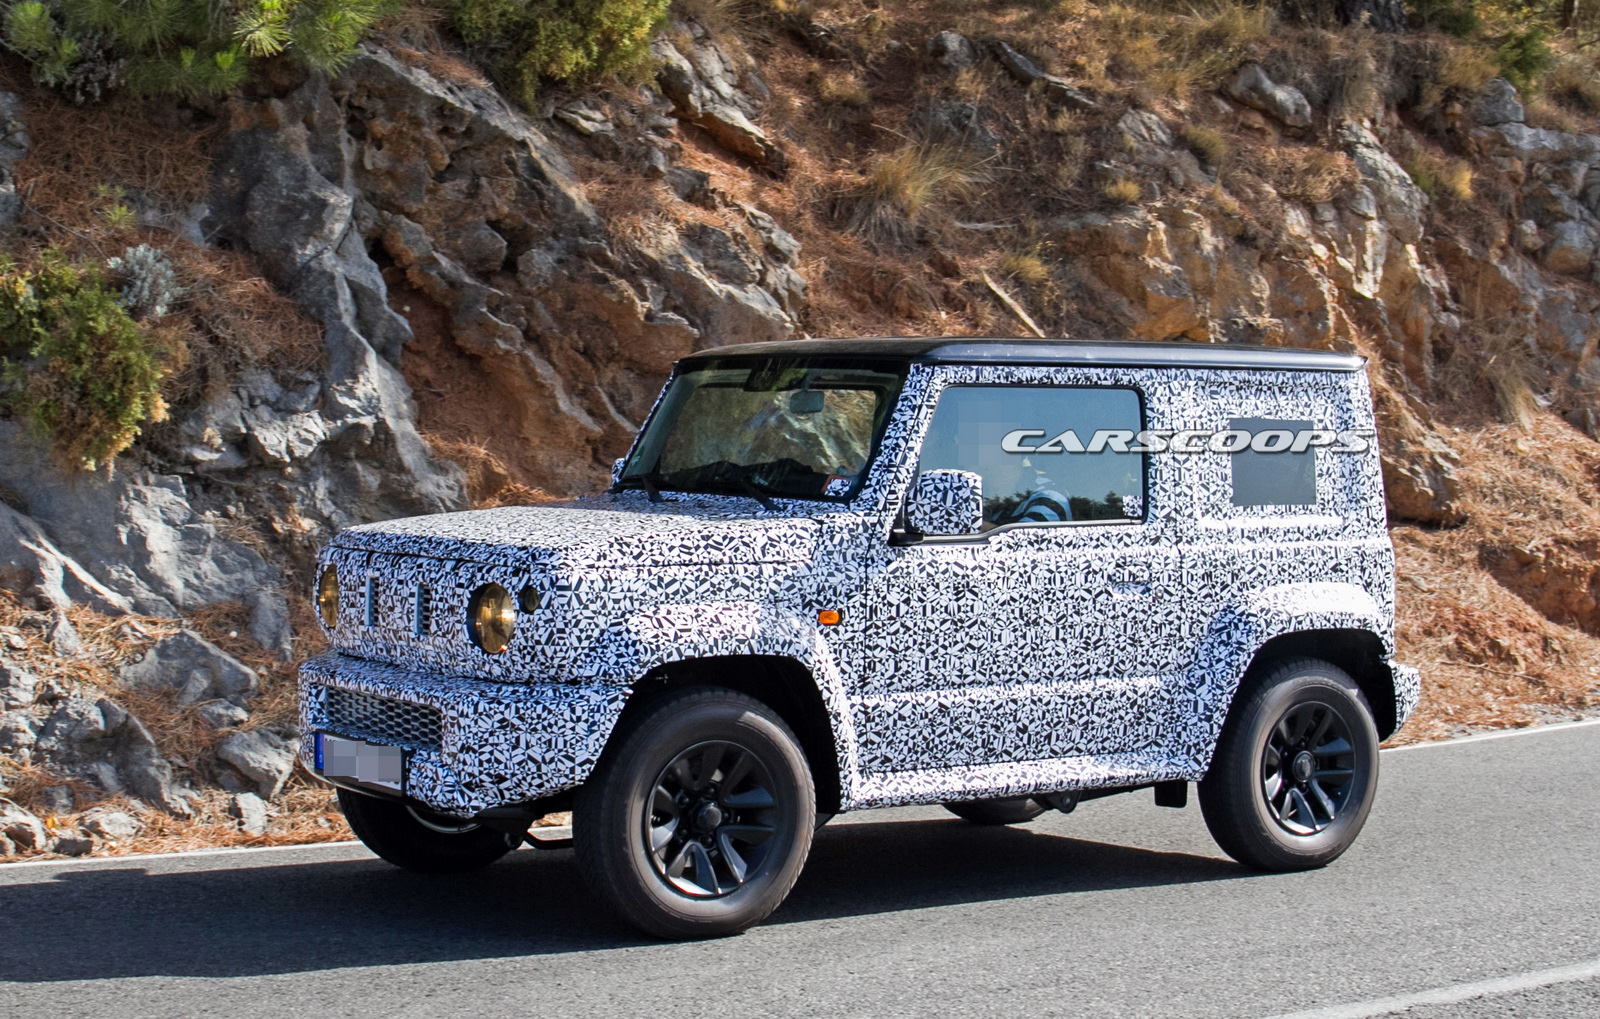 suzuki jimny replacement spotted on public roads for the first time carscoops. Black Bedroom Furniture Sets. Home Design Ideas